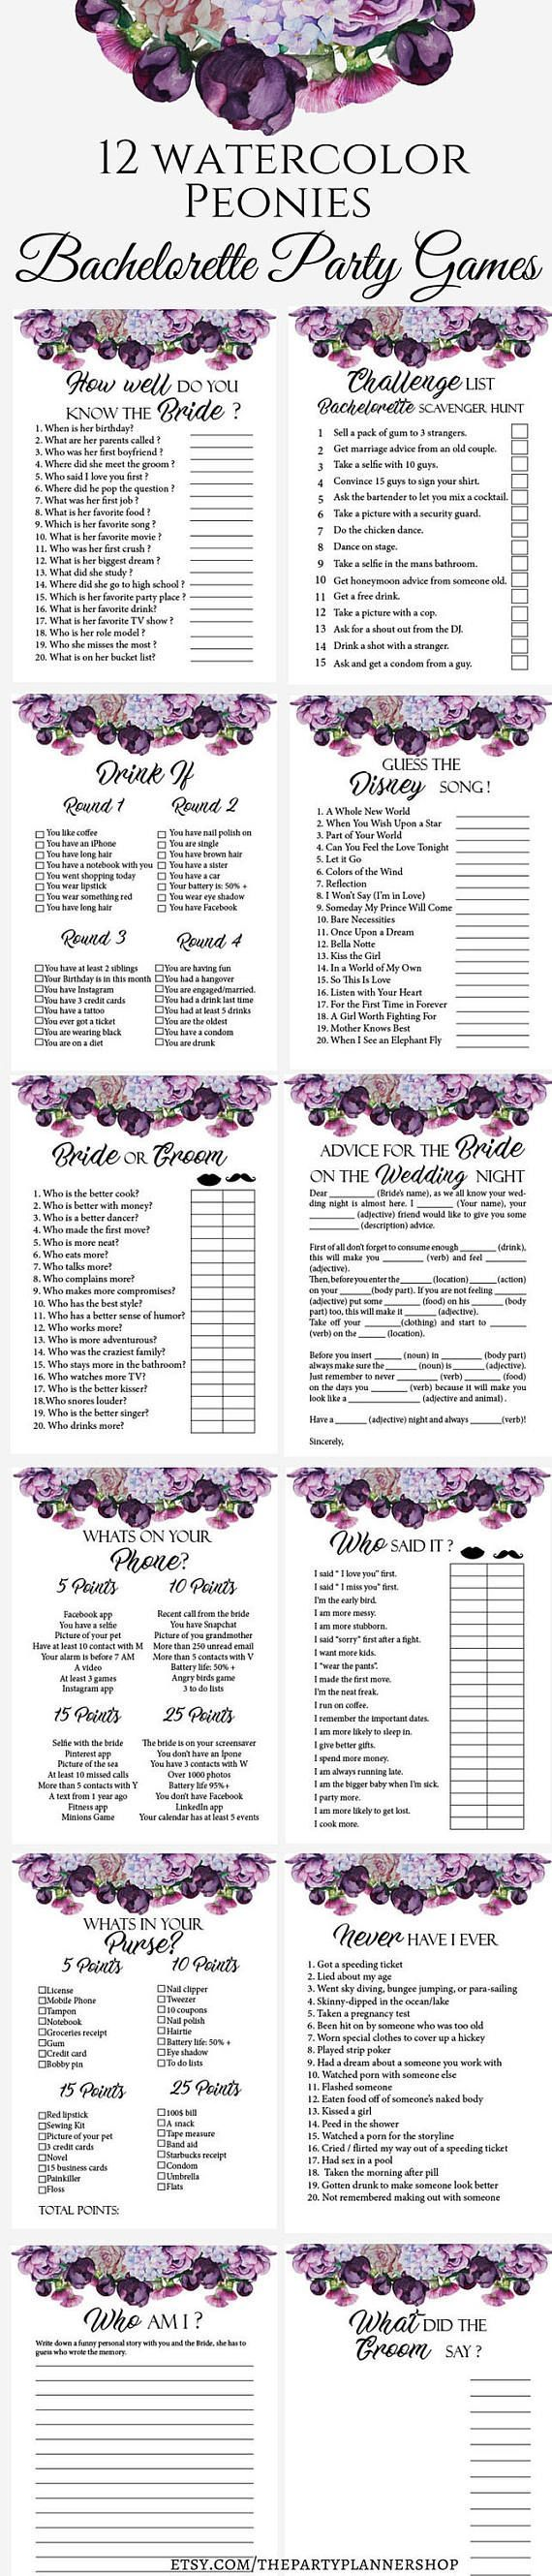 12 Watercolor Peonies Bachelorette Party Games, Printable Bachelorette Party Game, Bridal Shower Game, Hens Night Game  This printable bachelorette party or bridal shower game set is the perfect way to have a great time. From simple games to drinking games everybody can find